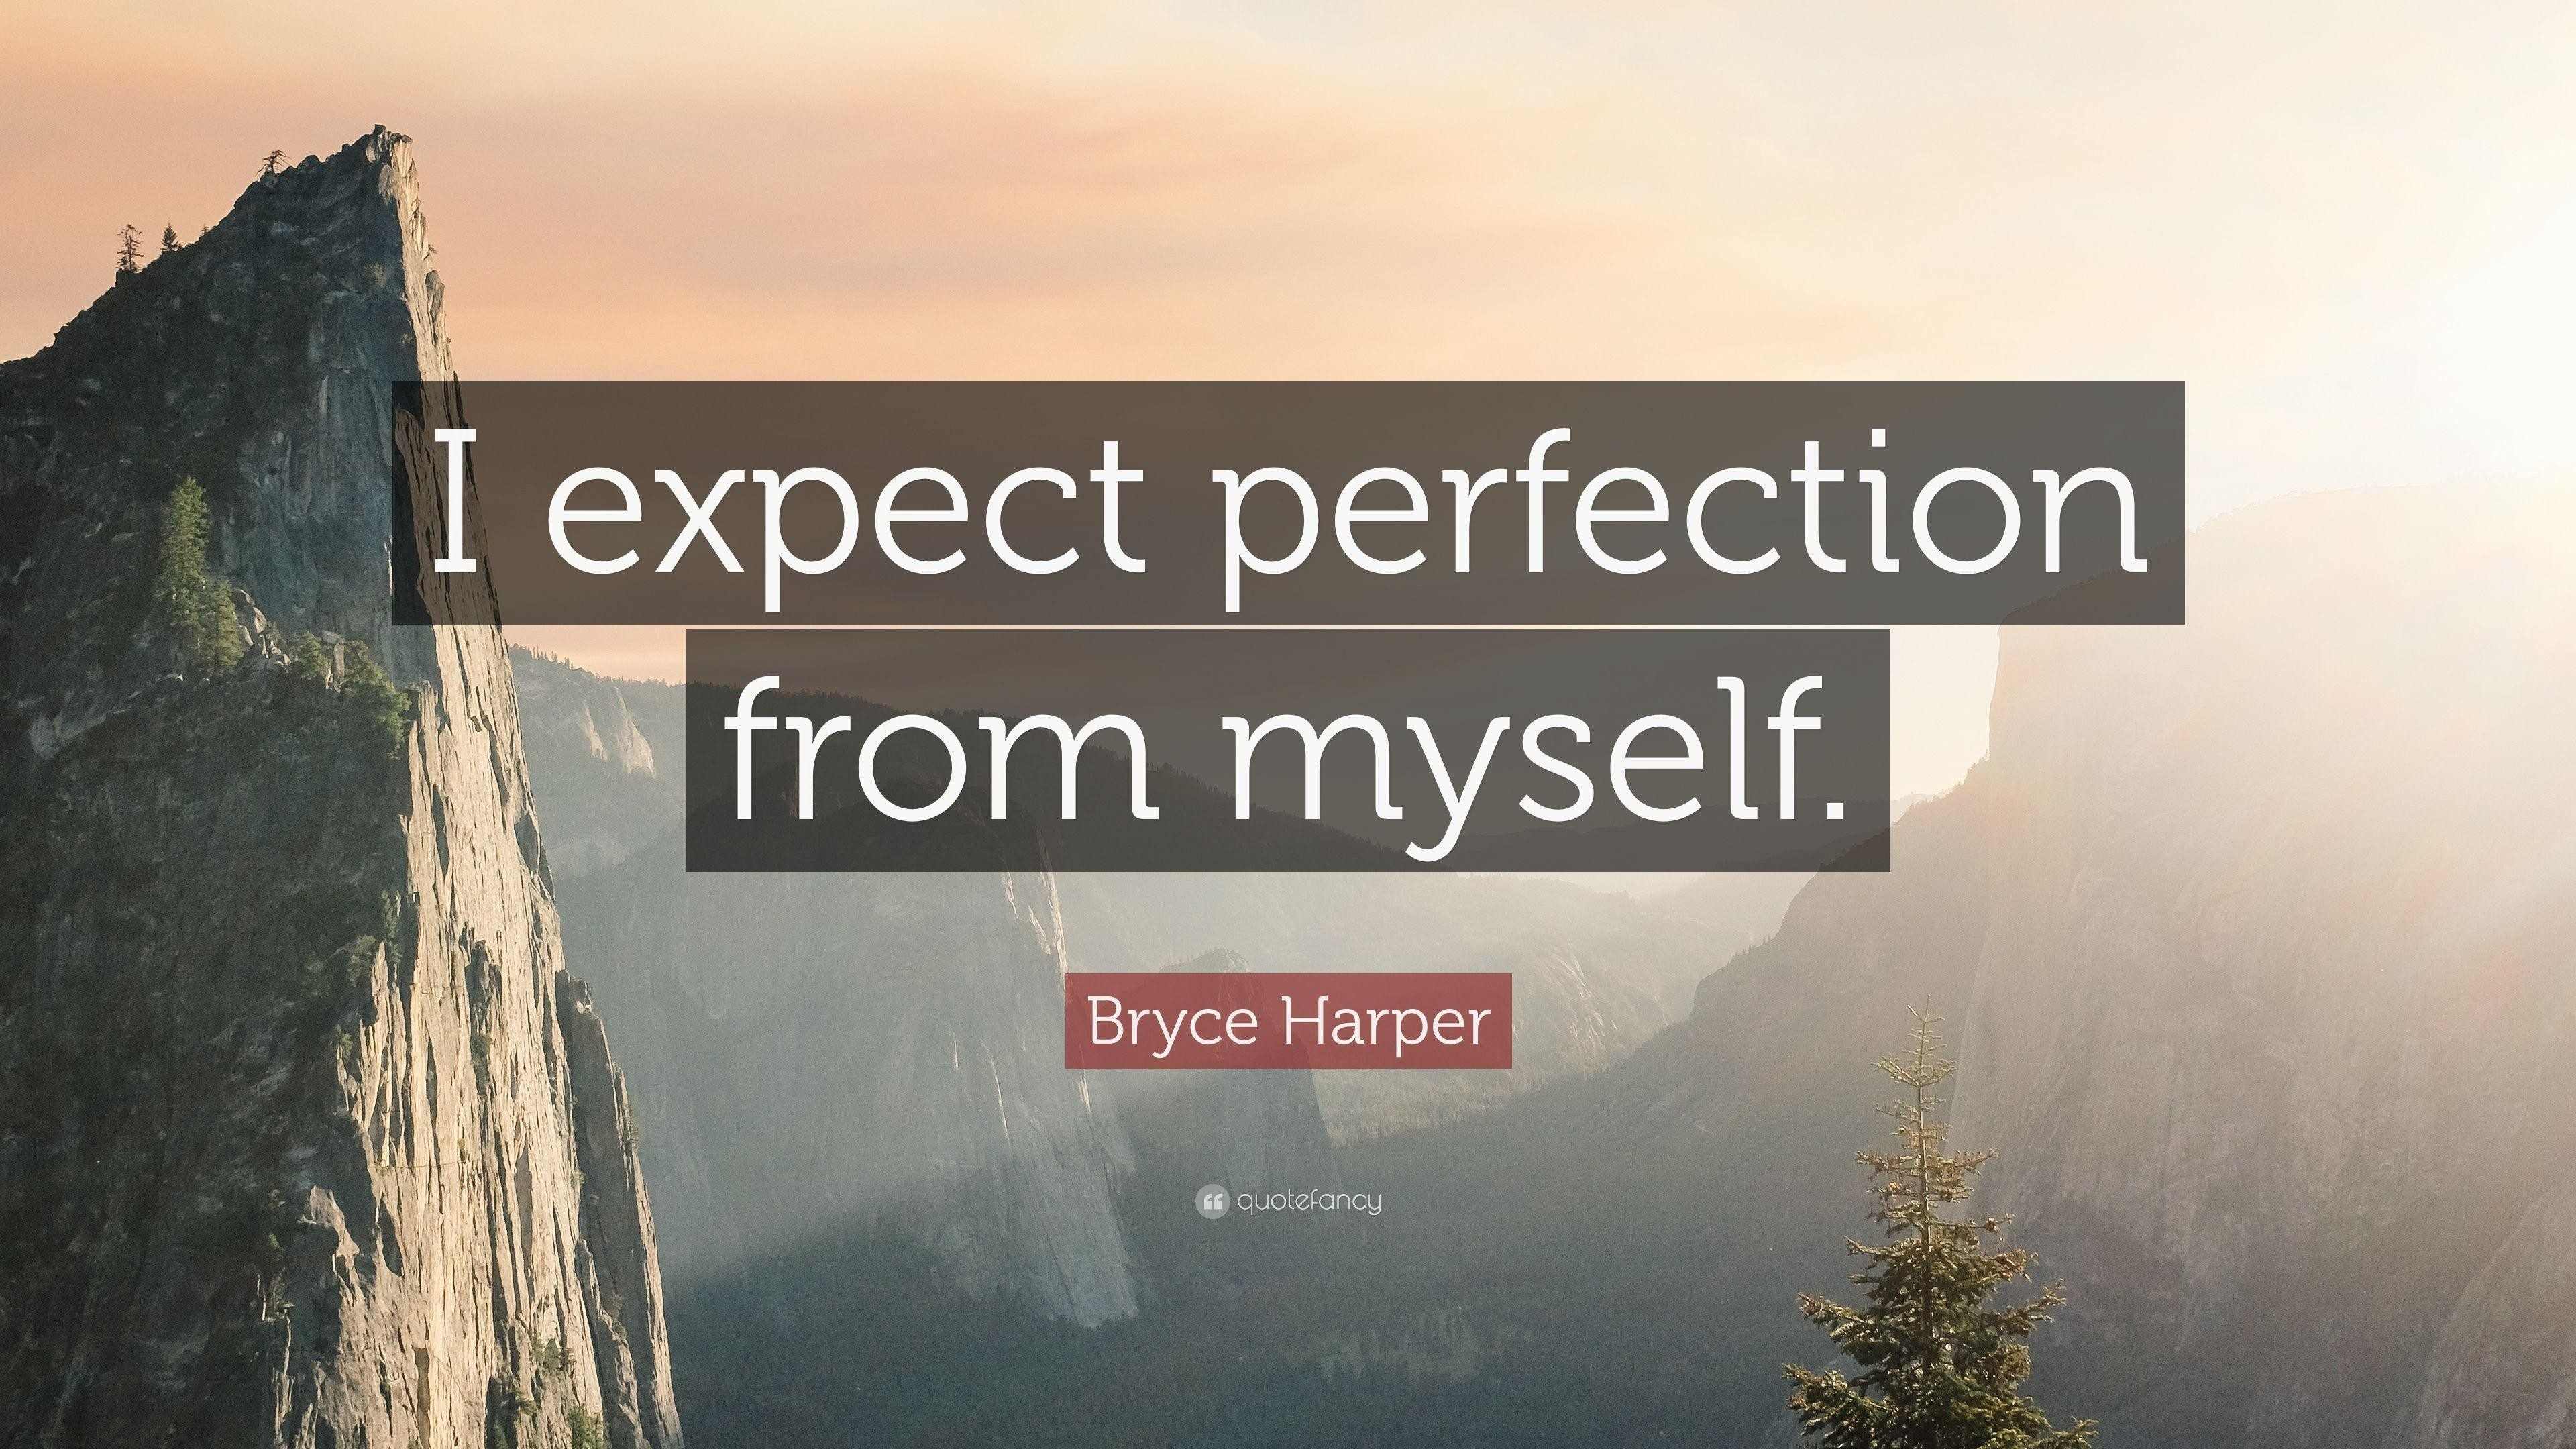 Bryce Harper Quotes (16 wallpapers) – Quotefancy